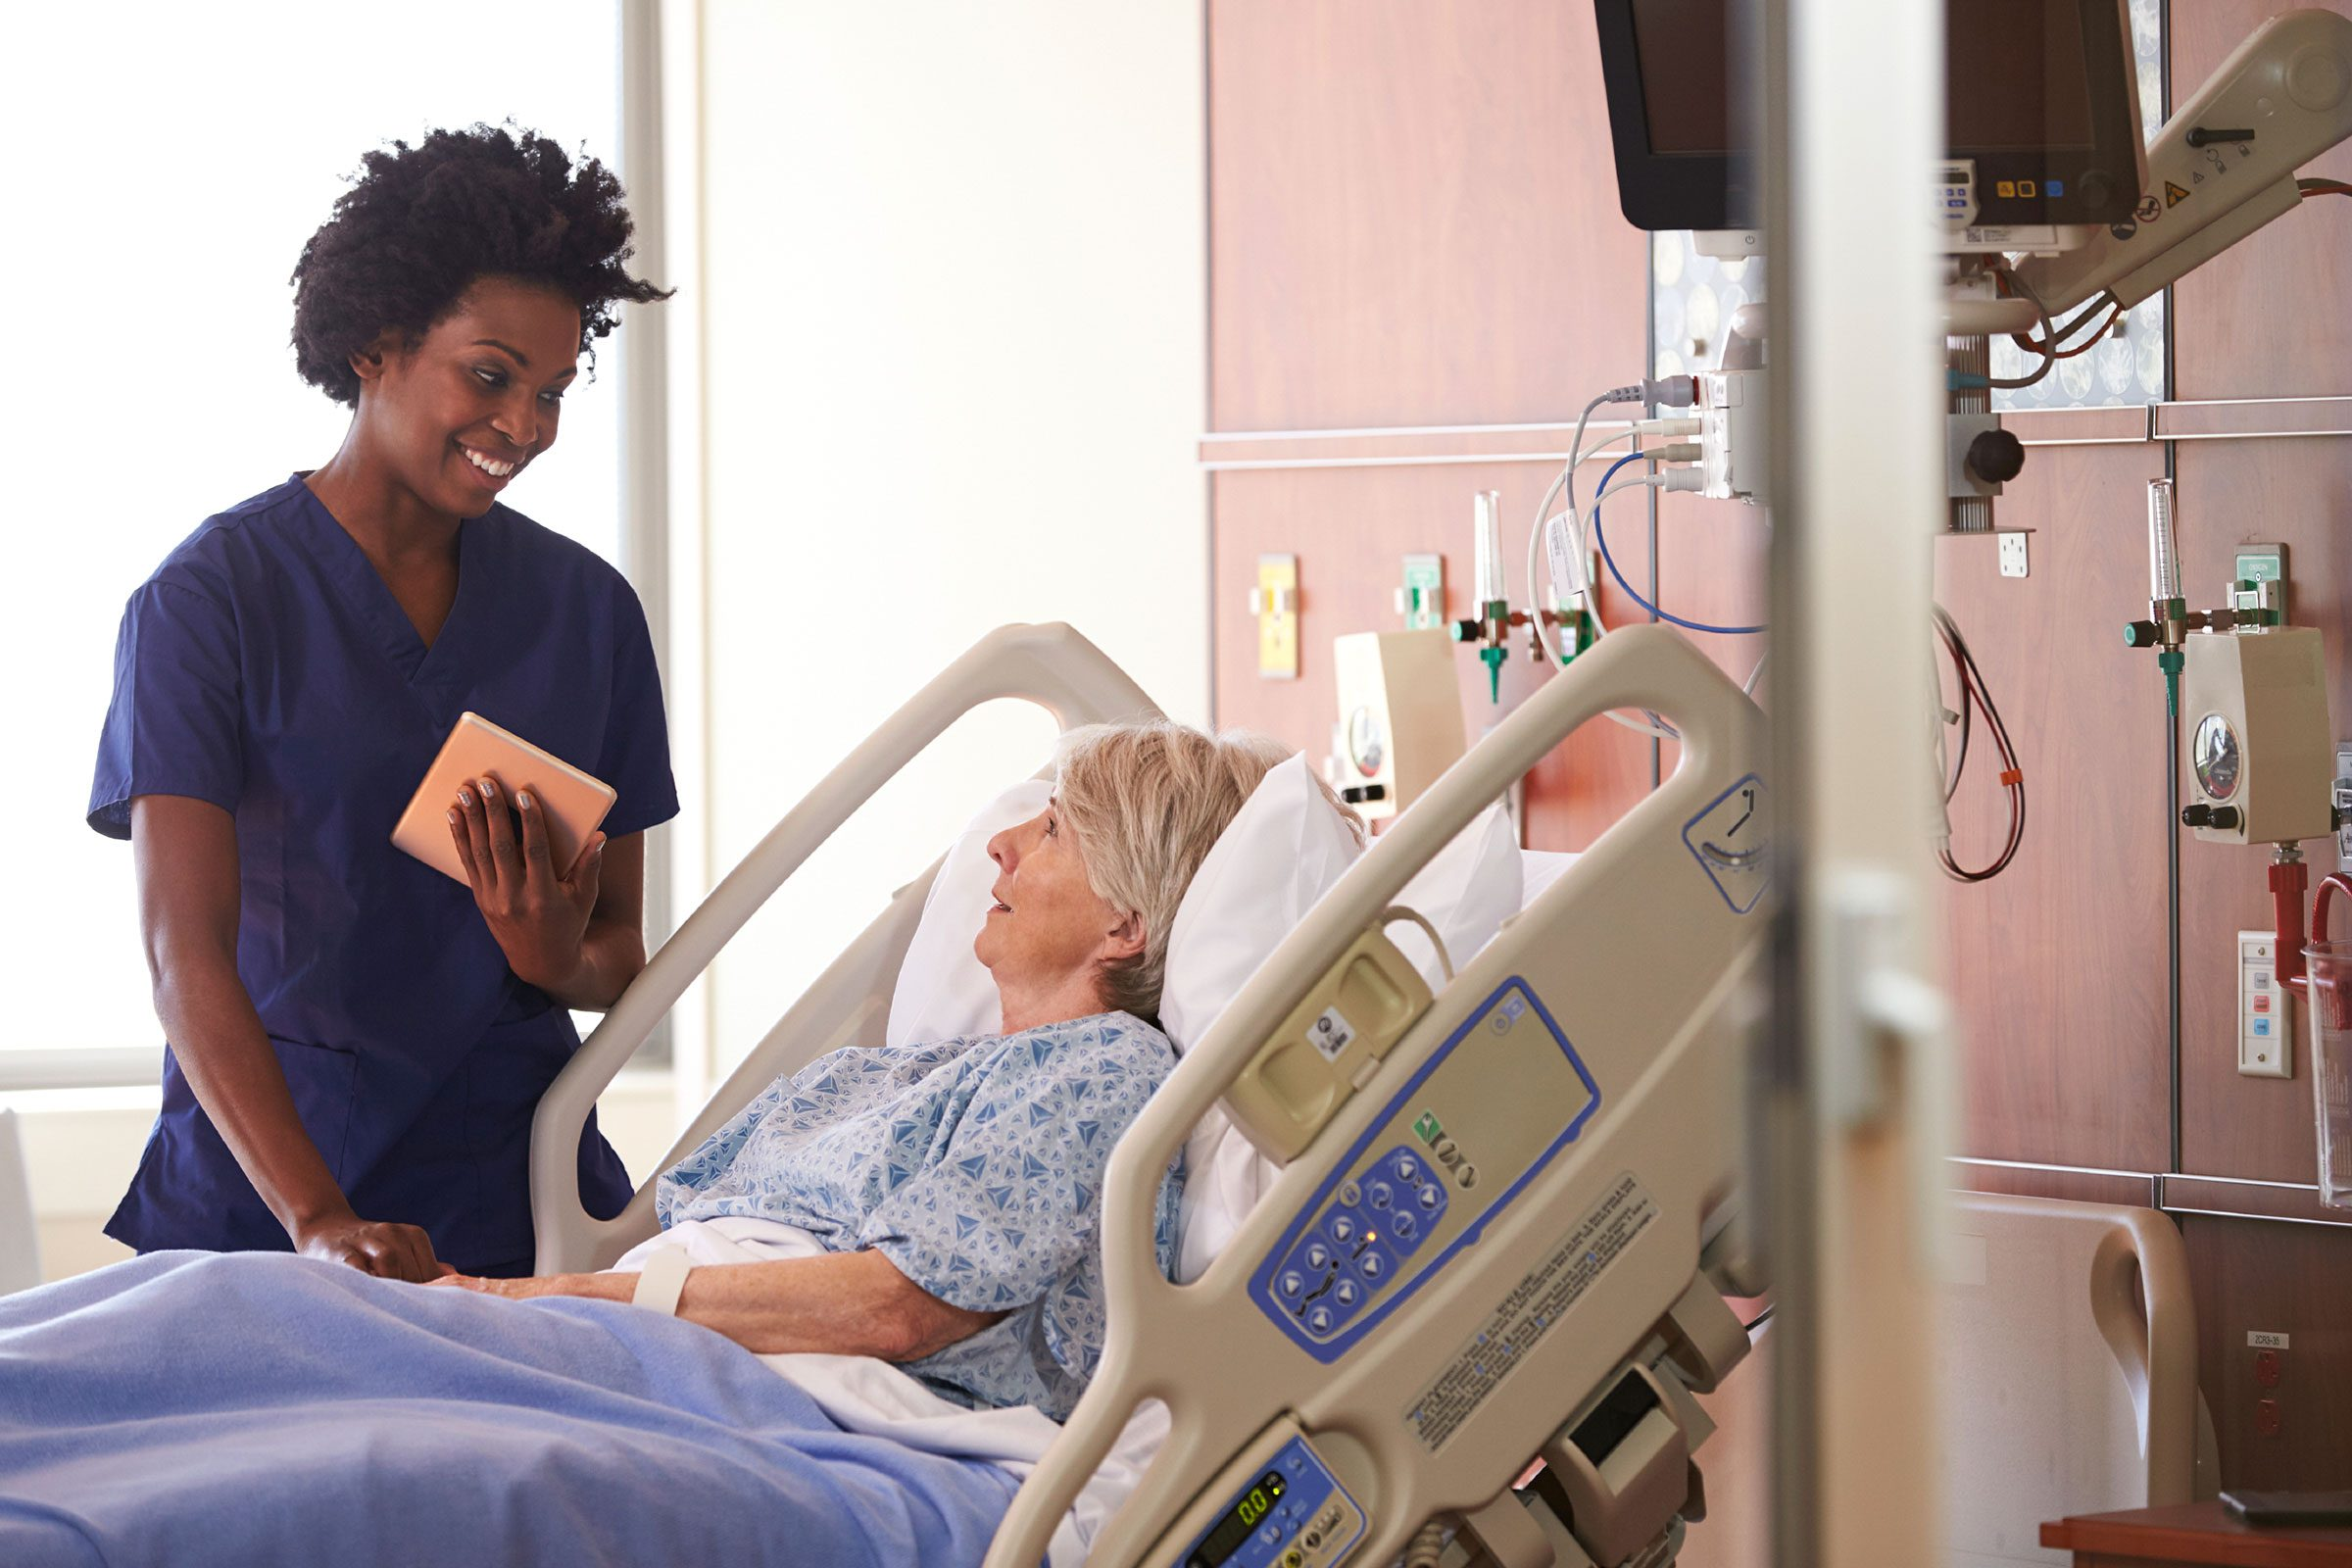 nurse smiling at patient in hospital bed